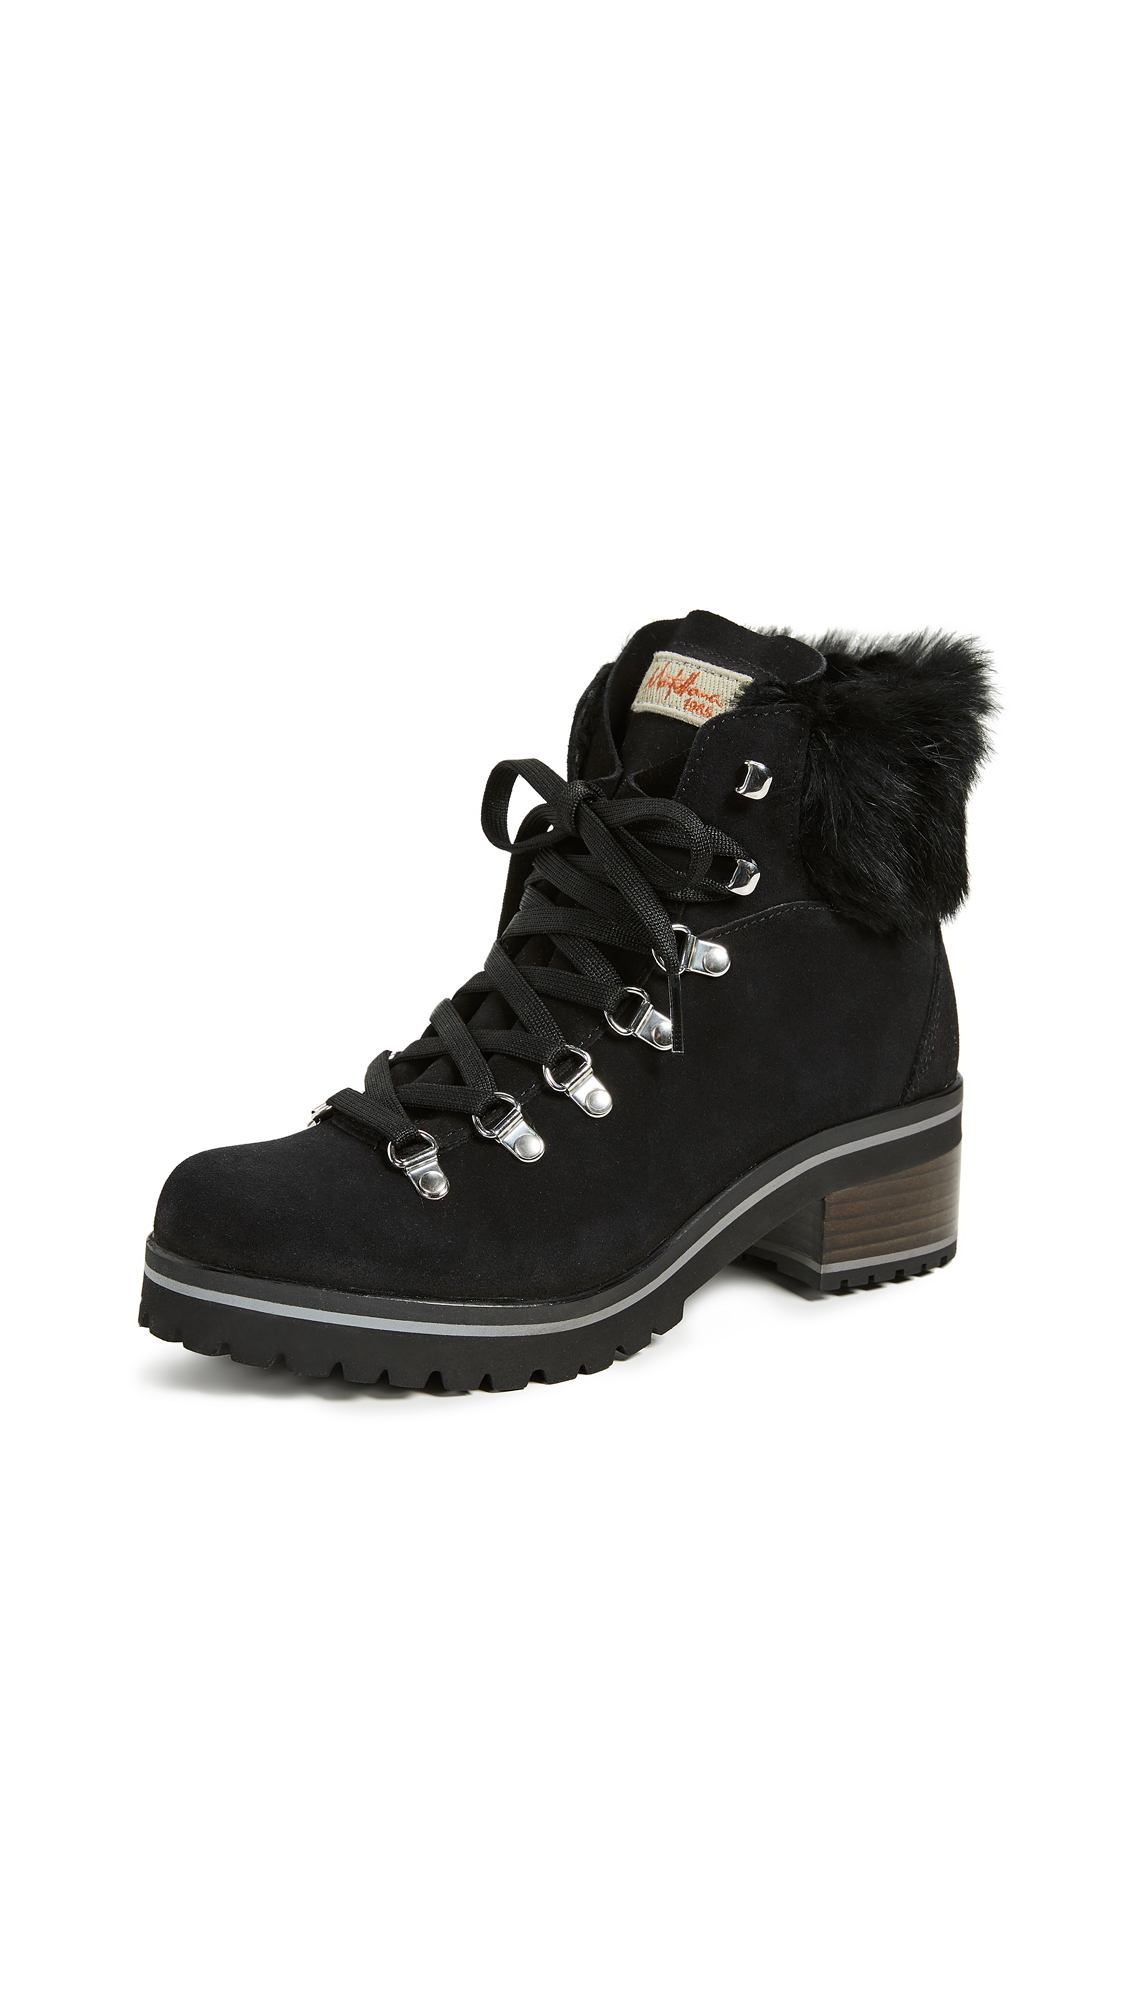 MONTELLIANA Ninfea Hiker Boots in Black